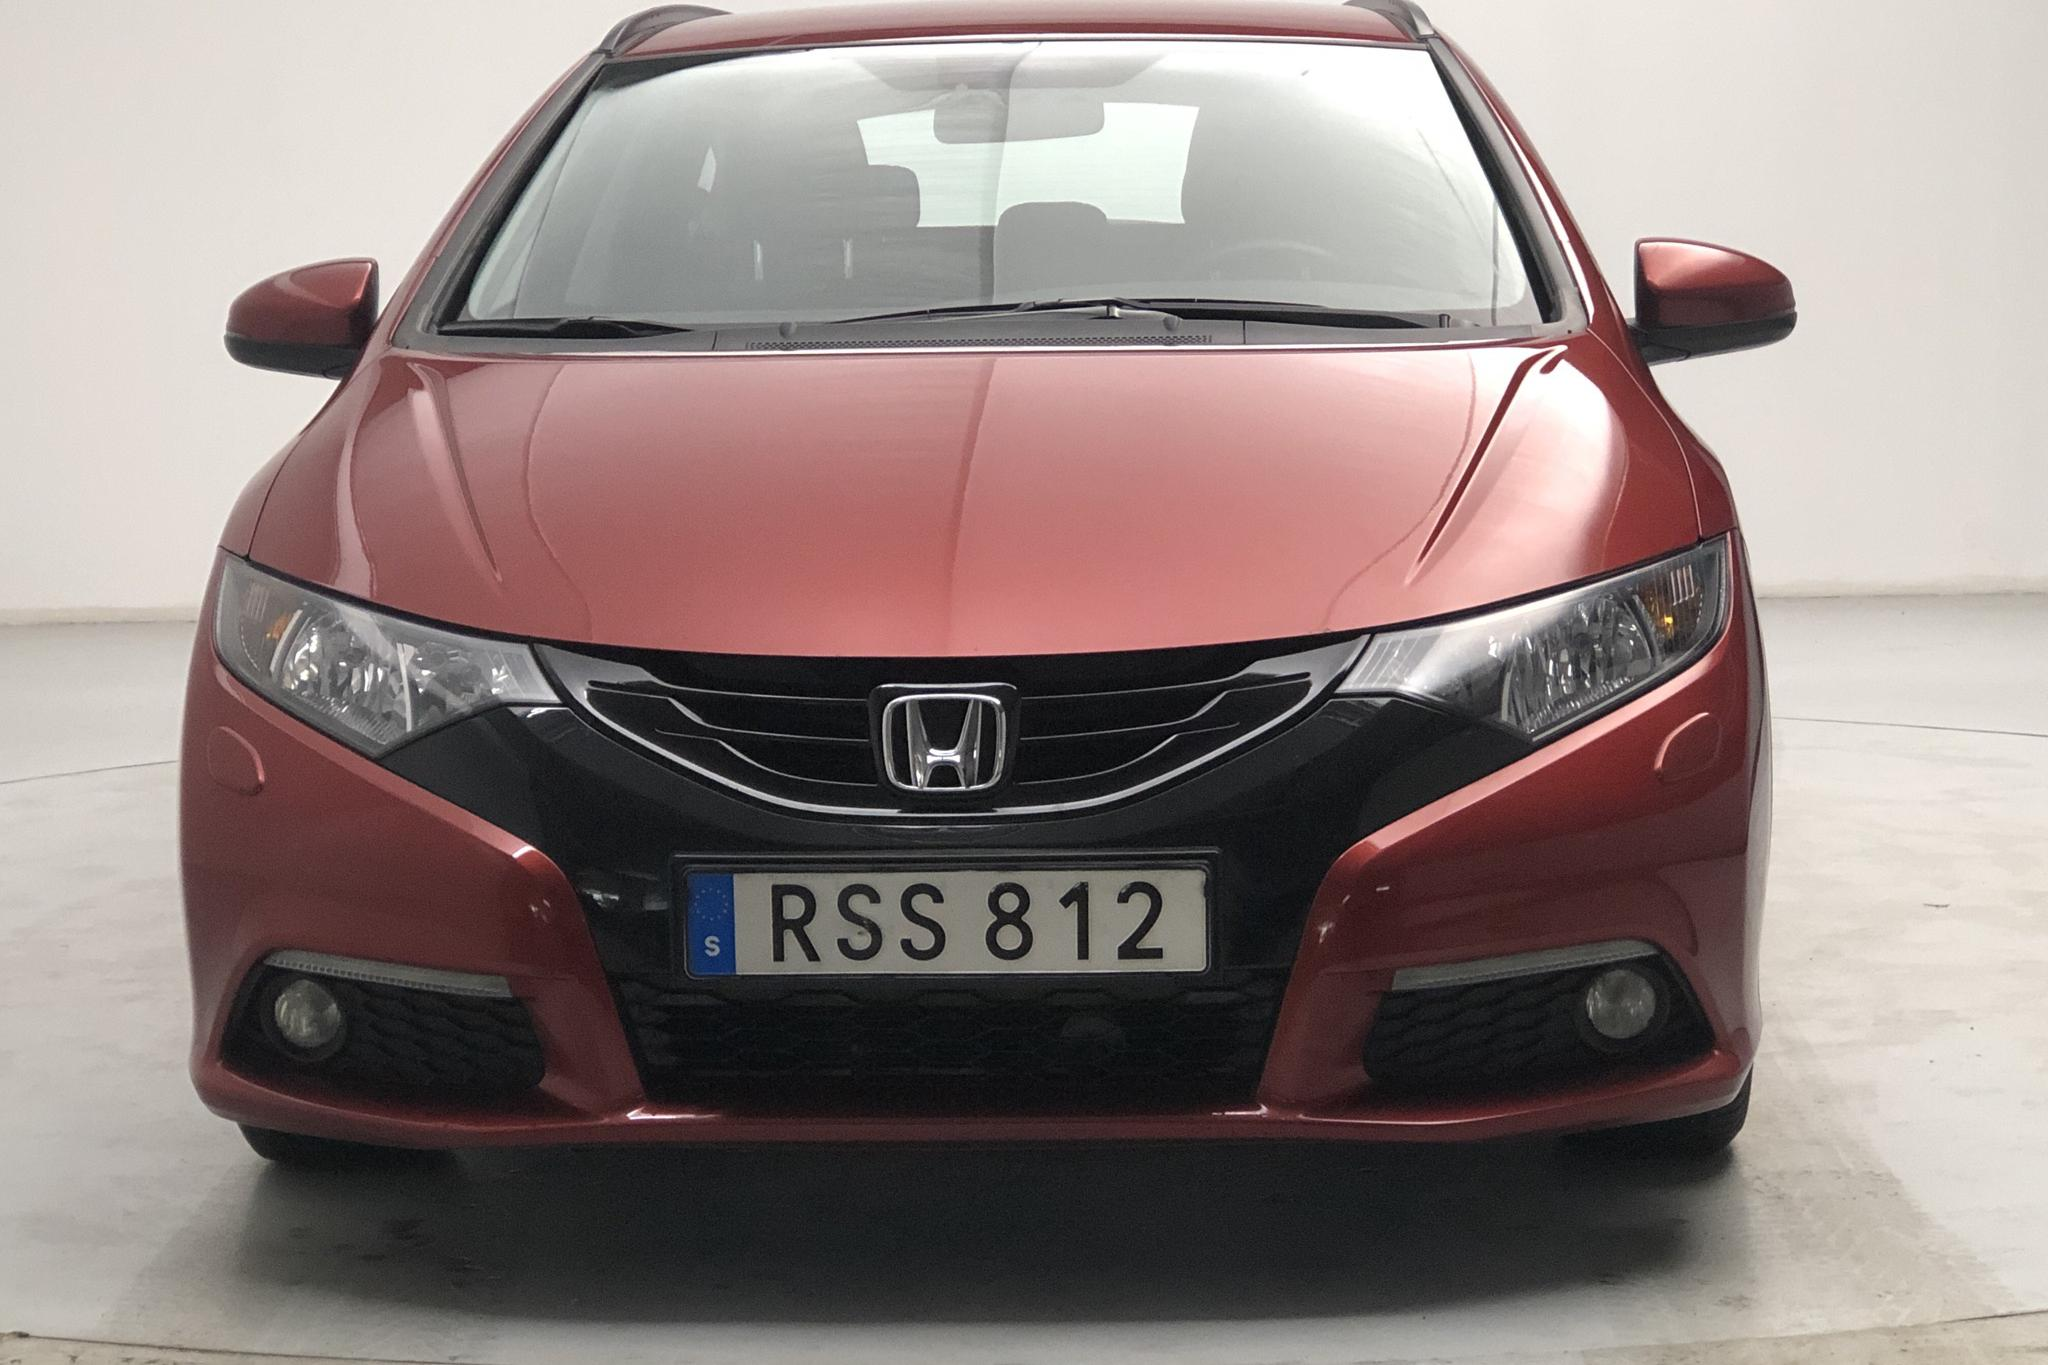 Honda Civic 1.8 i-VTEC Tourer (142hk) - 64 800 km - Automatic - red - 2014